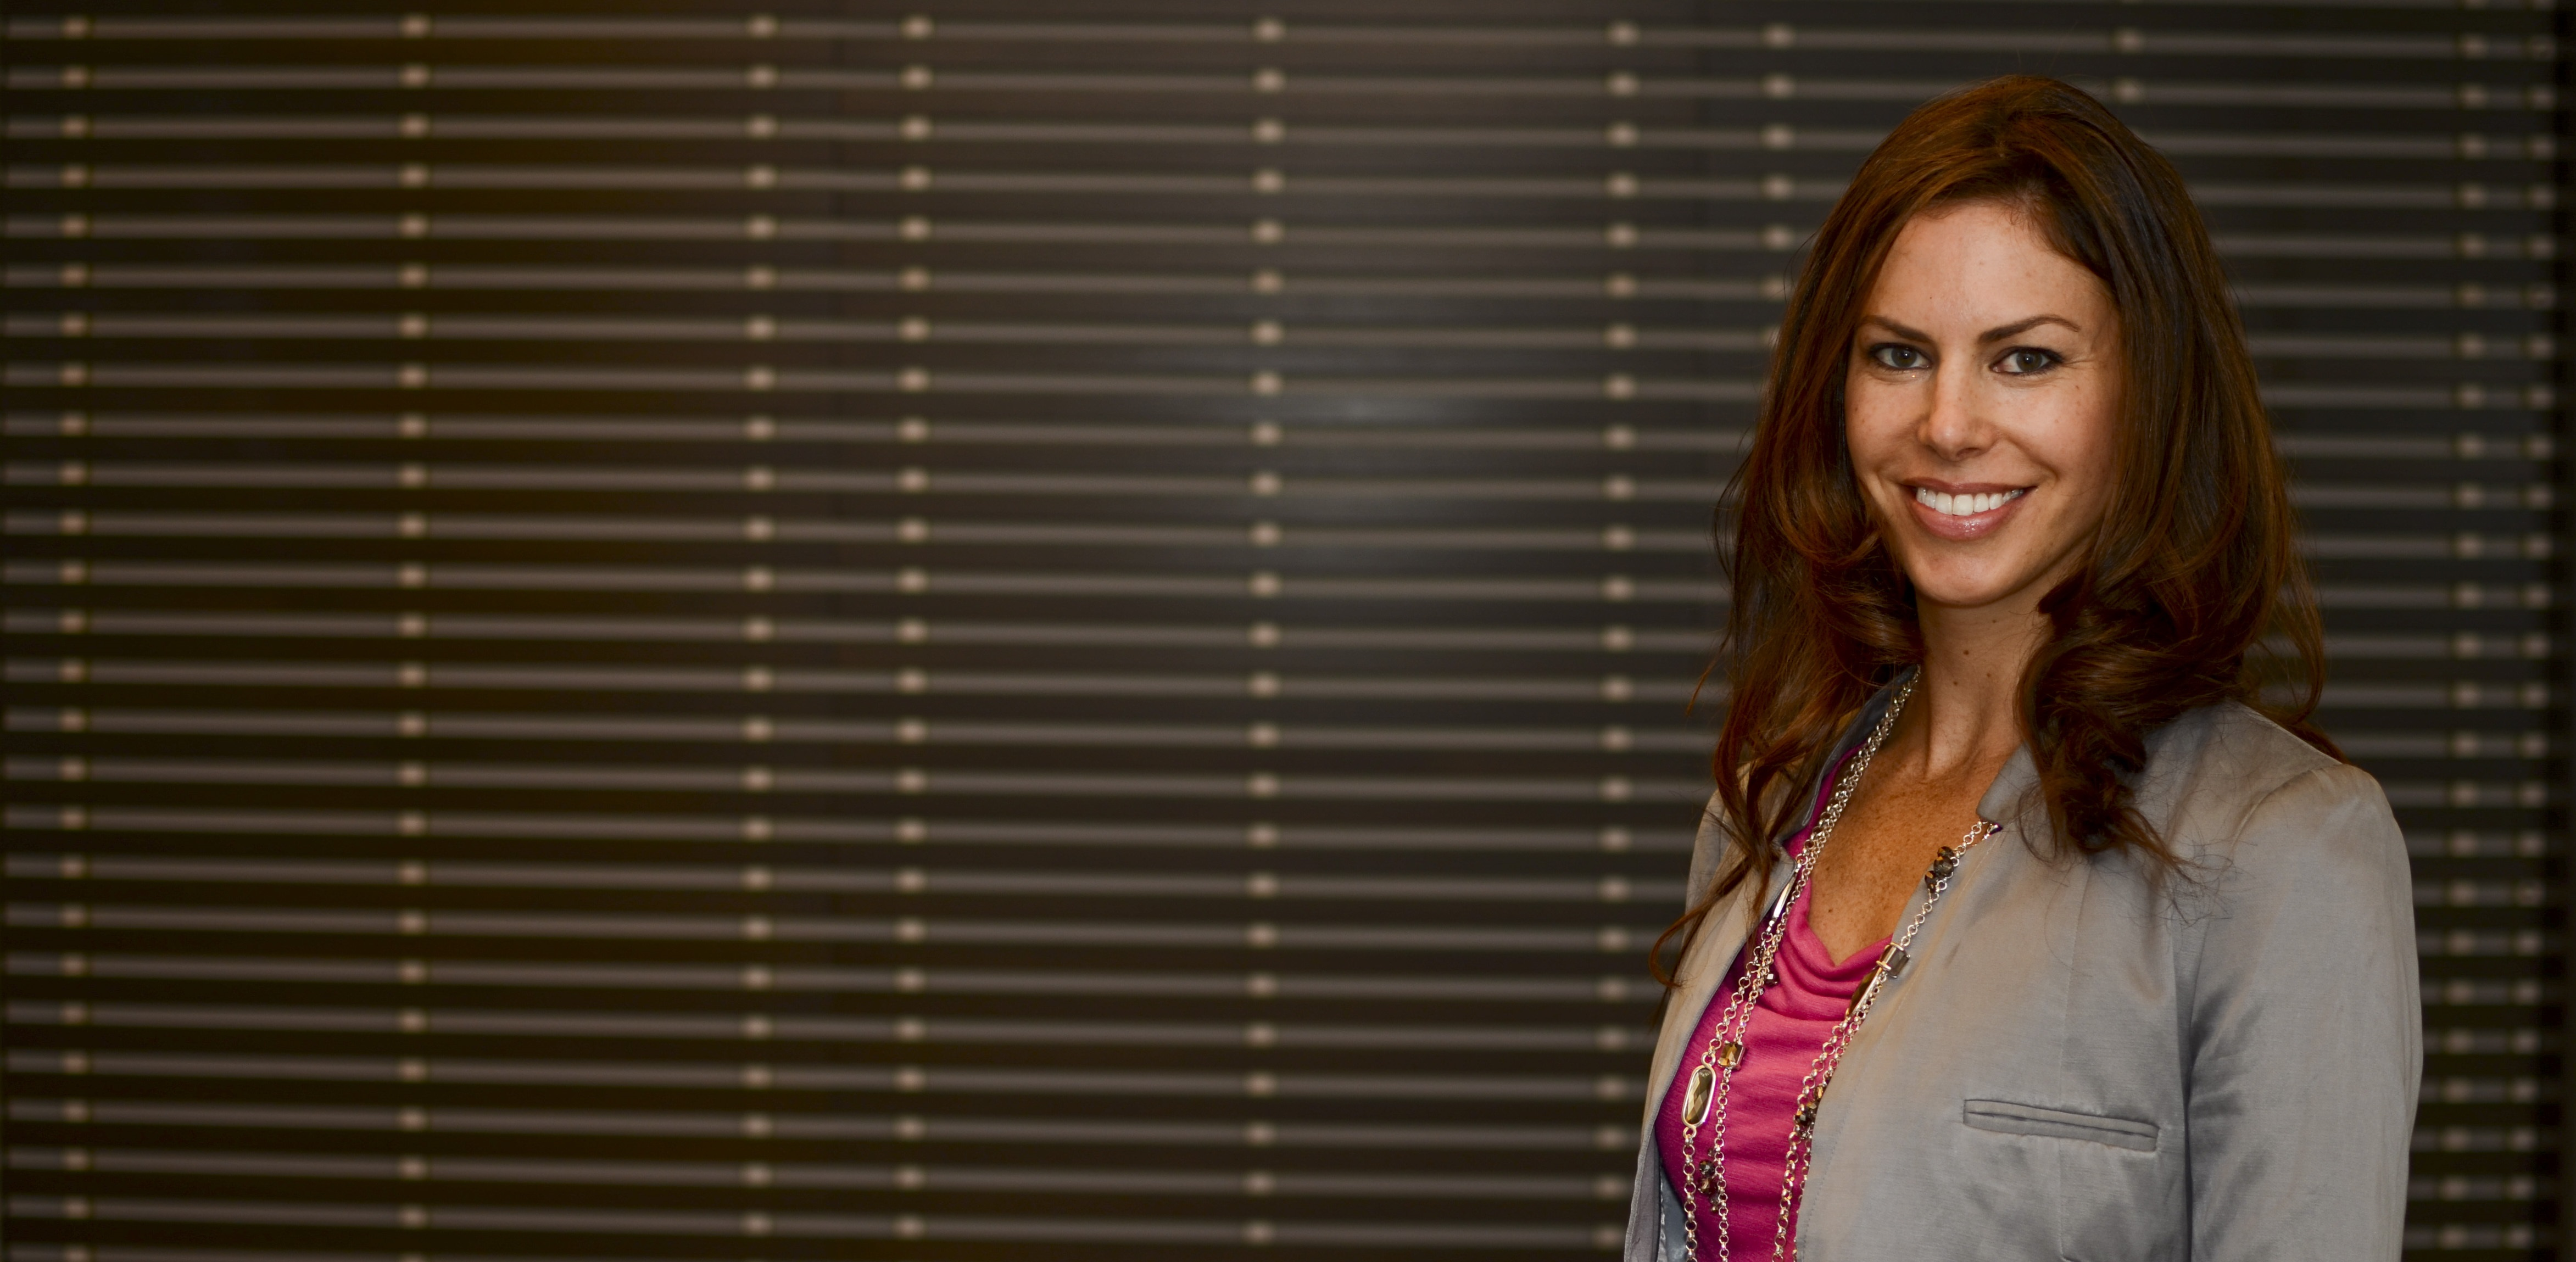 Dawn Lauer, MWWPR chief client officer and managing director of B2B practice.